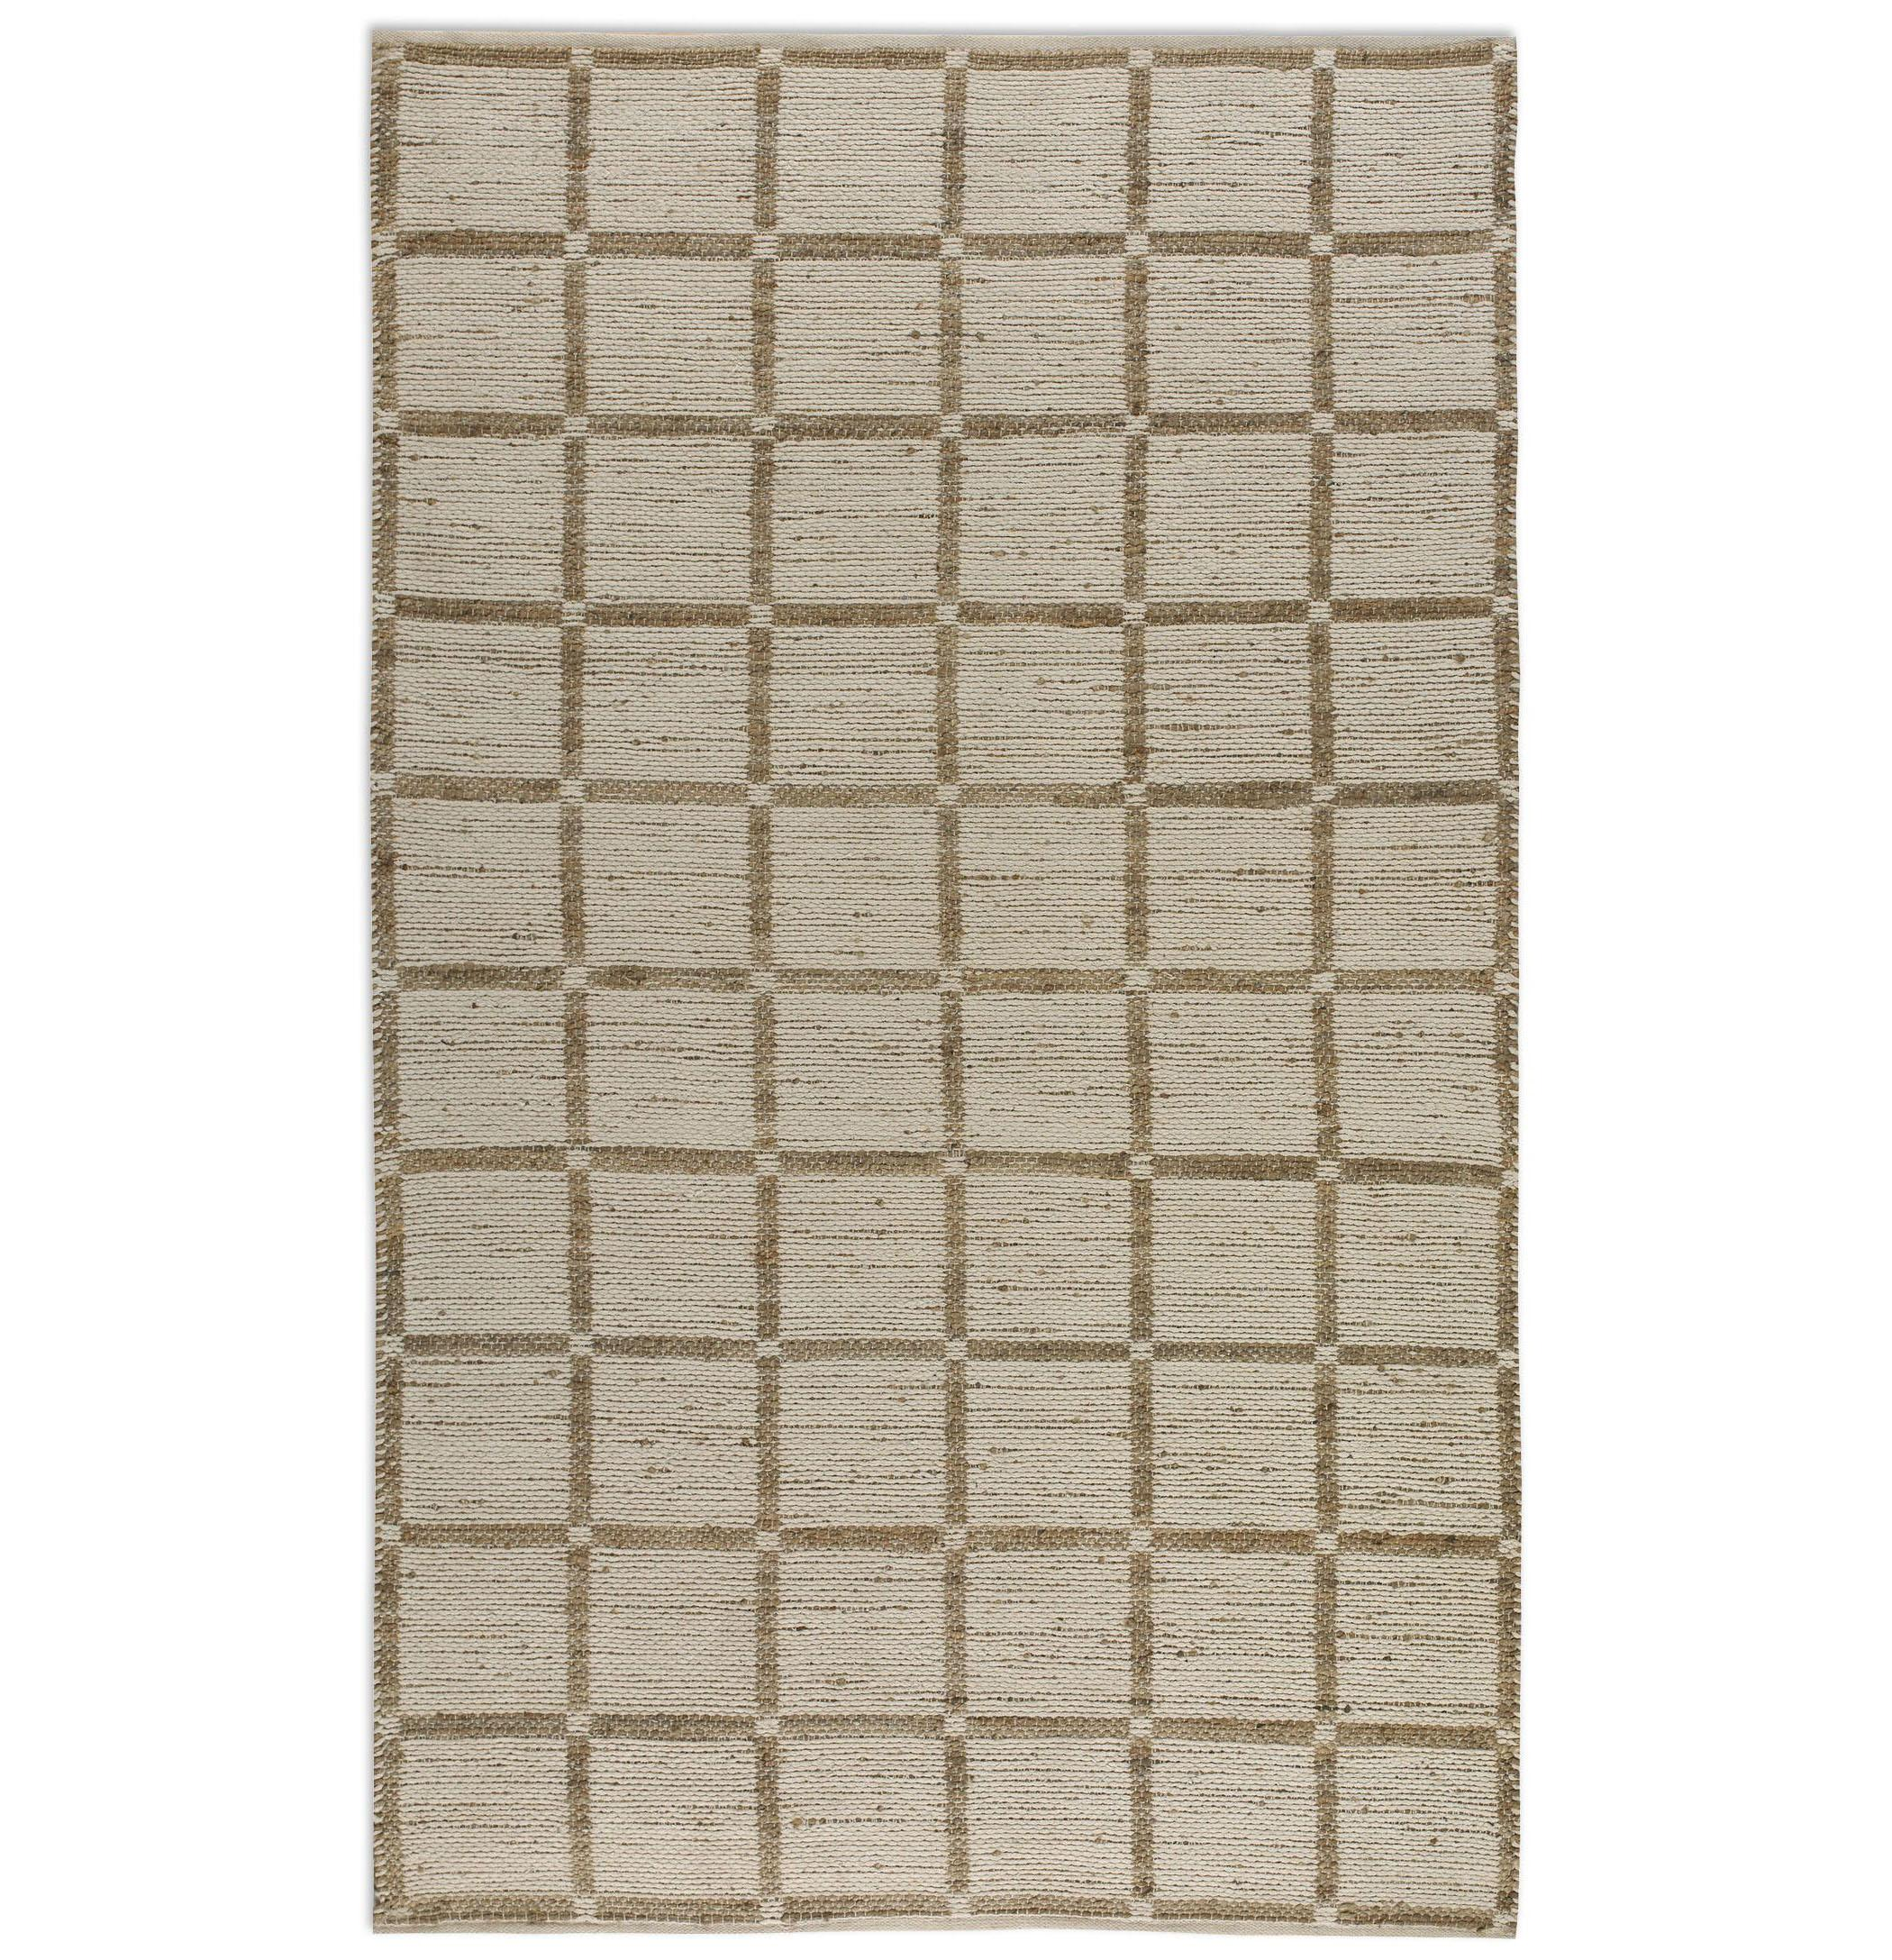 Uttermost Rugs Shahpur 5 X 8 Reversible Rug - Item Number: 71042-5